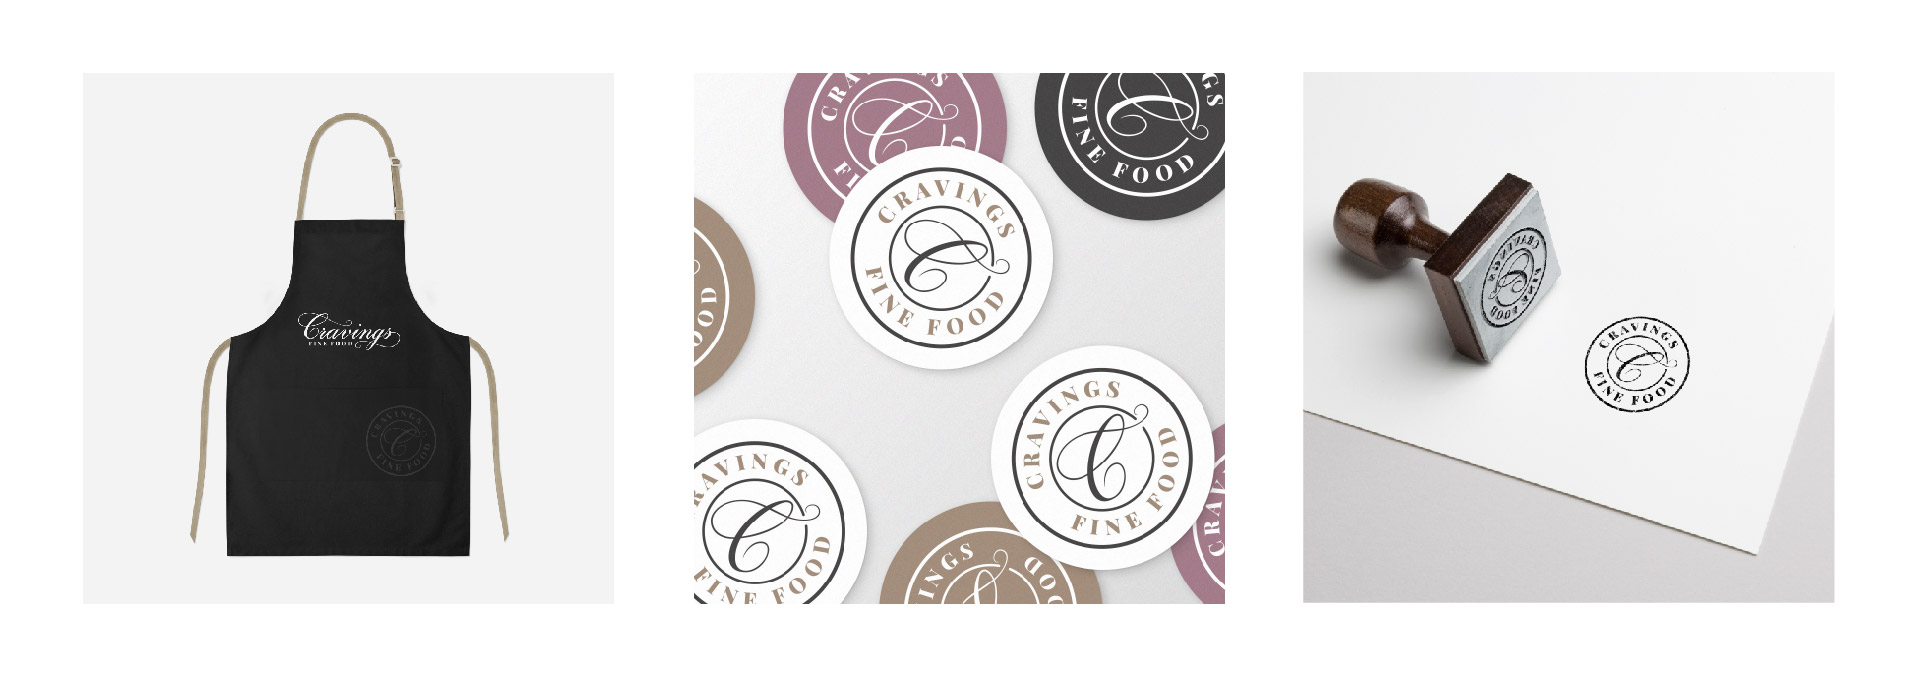 cravings fine food apron stickers and stamp